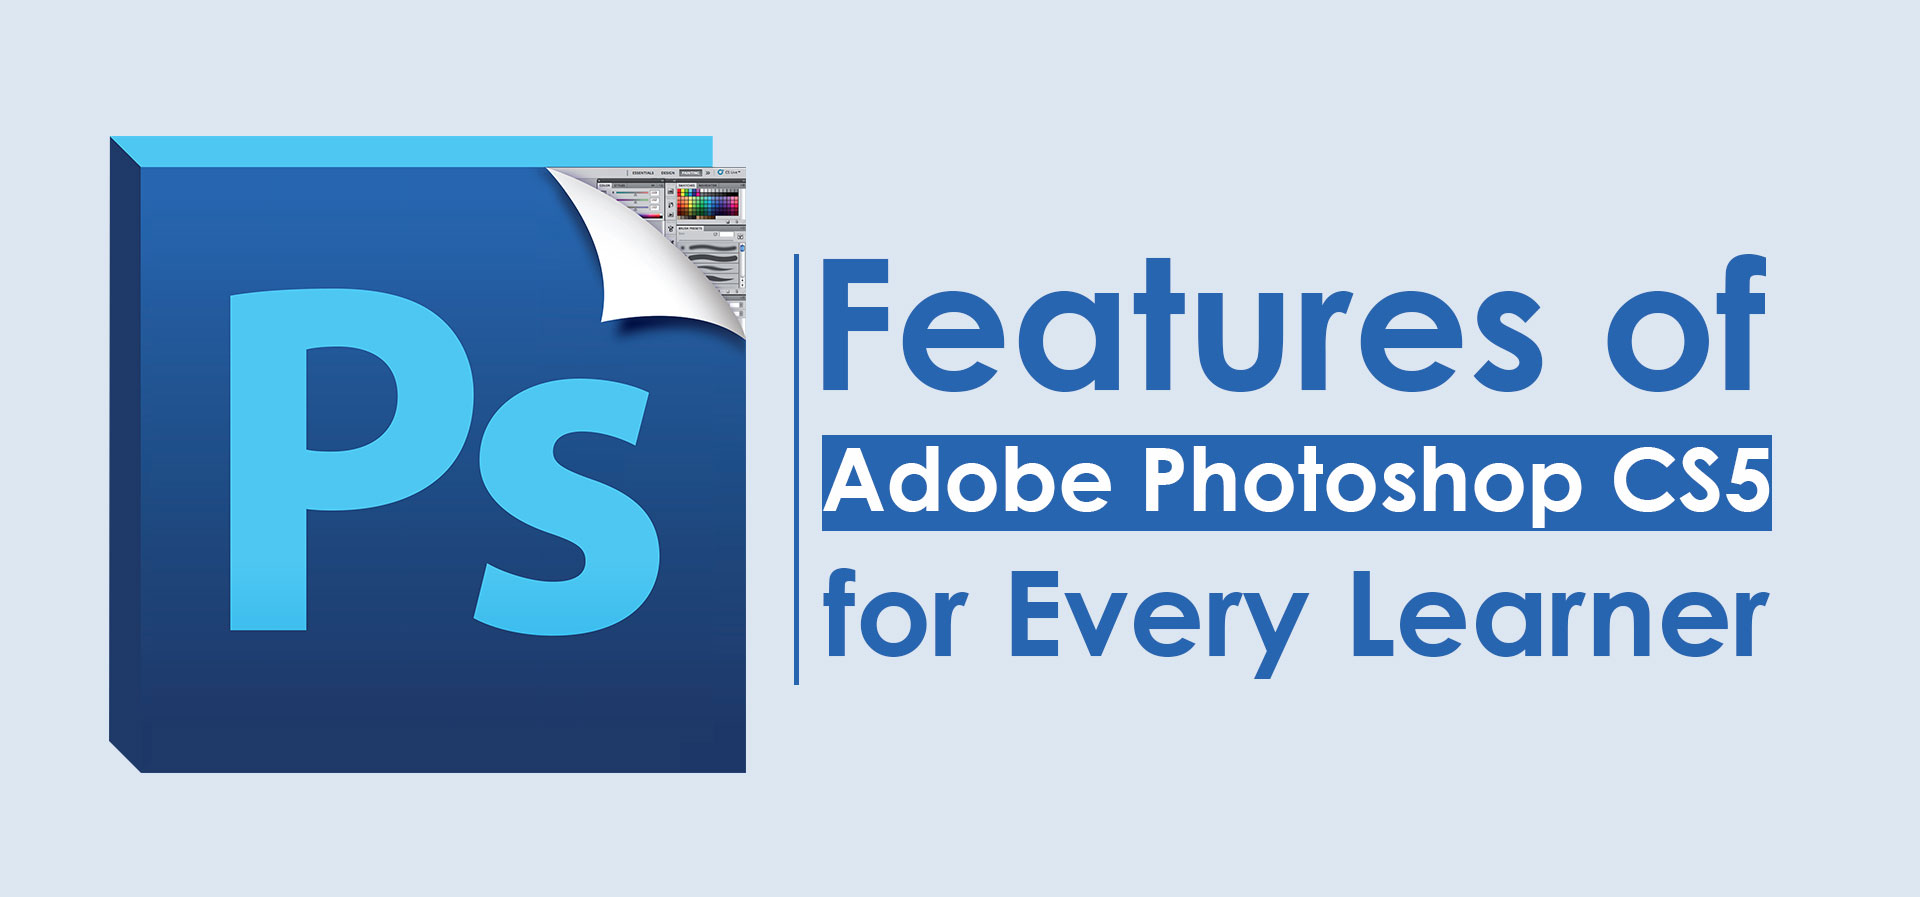 Features-of-Adobe-Photoshop-CS5-for-Every-Learner